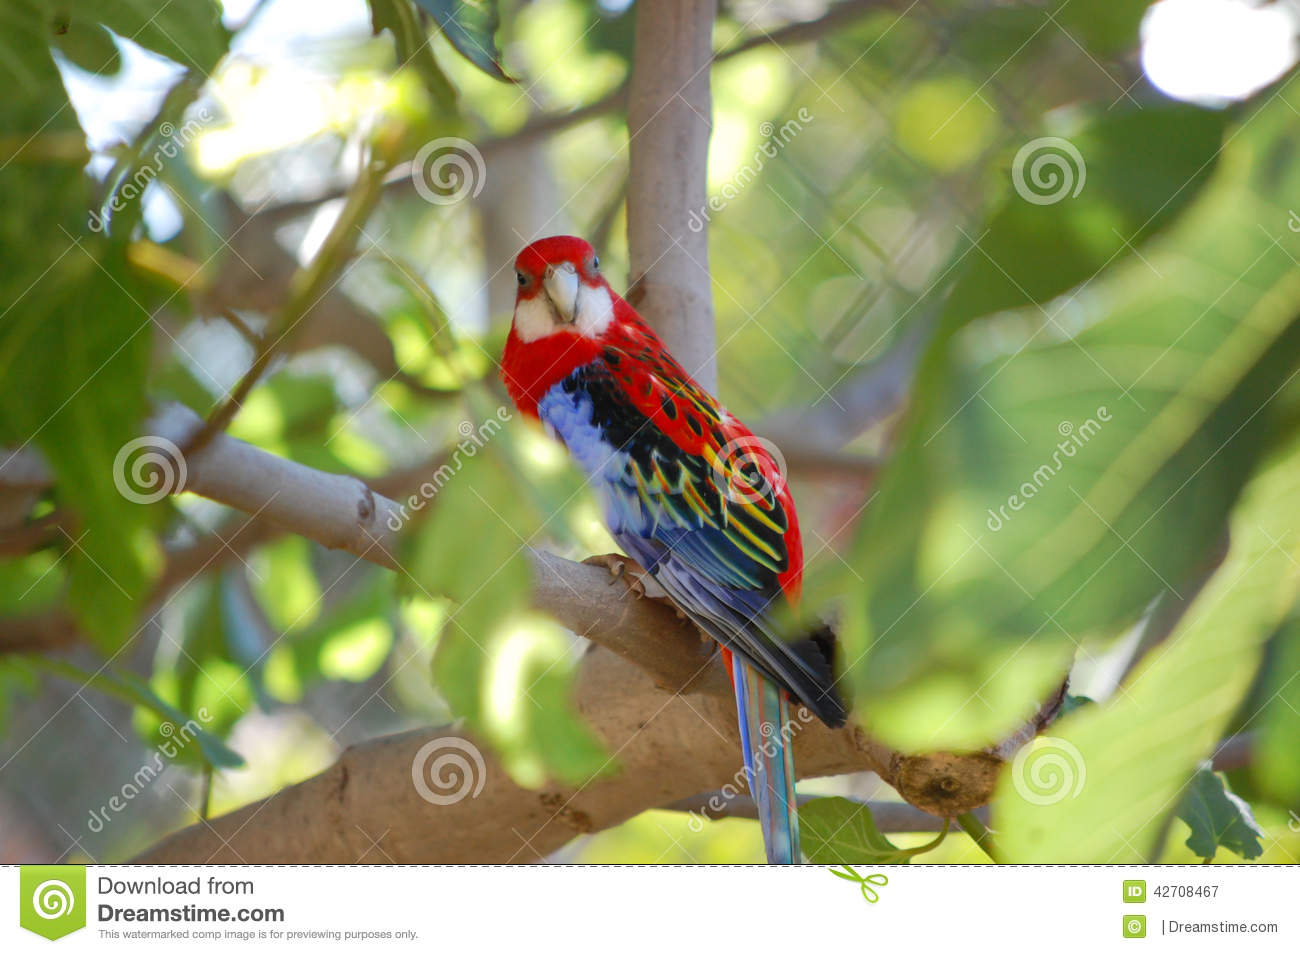 Colorful parrot on a tree